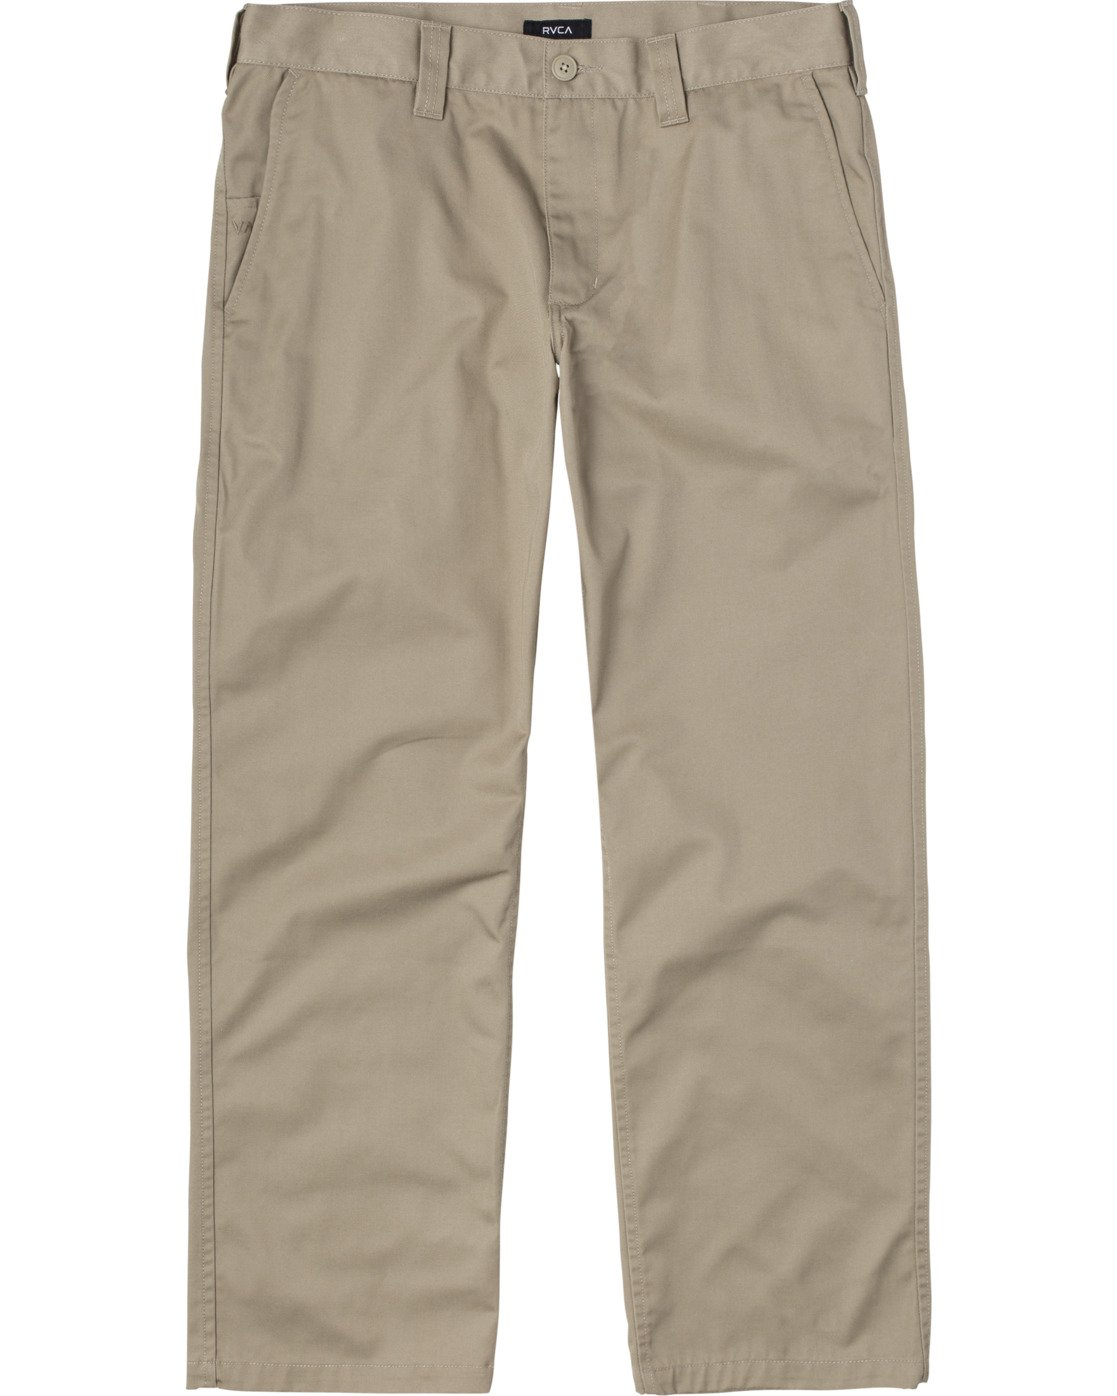 0 AMERICANA RELAXED FIT CHINO PANT Beige M3583RAC RVCA